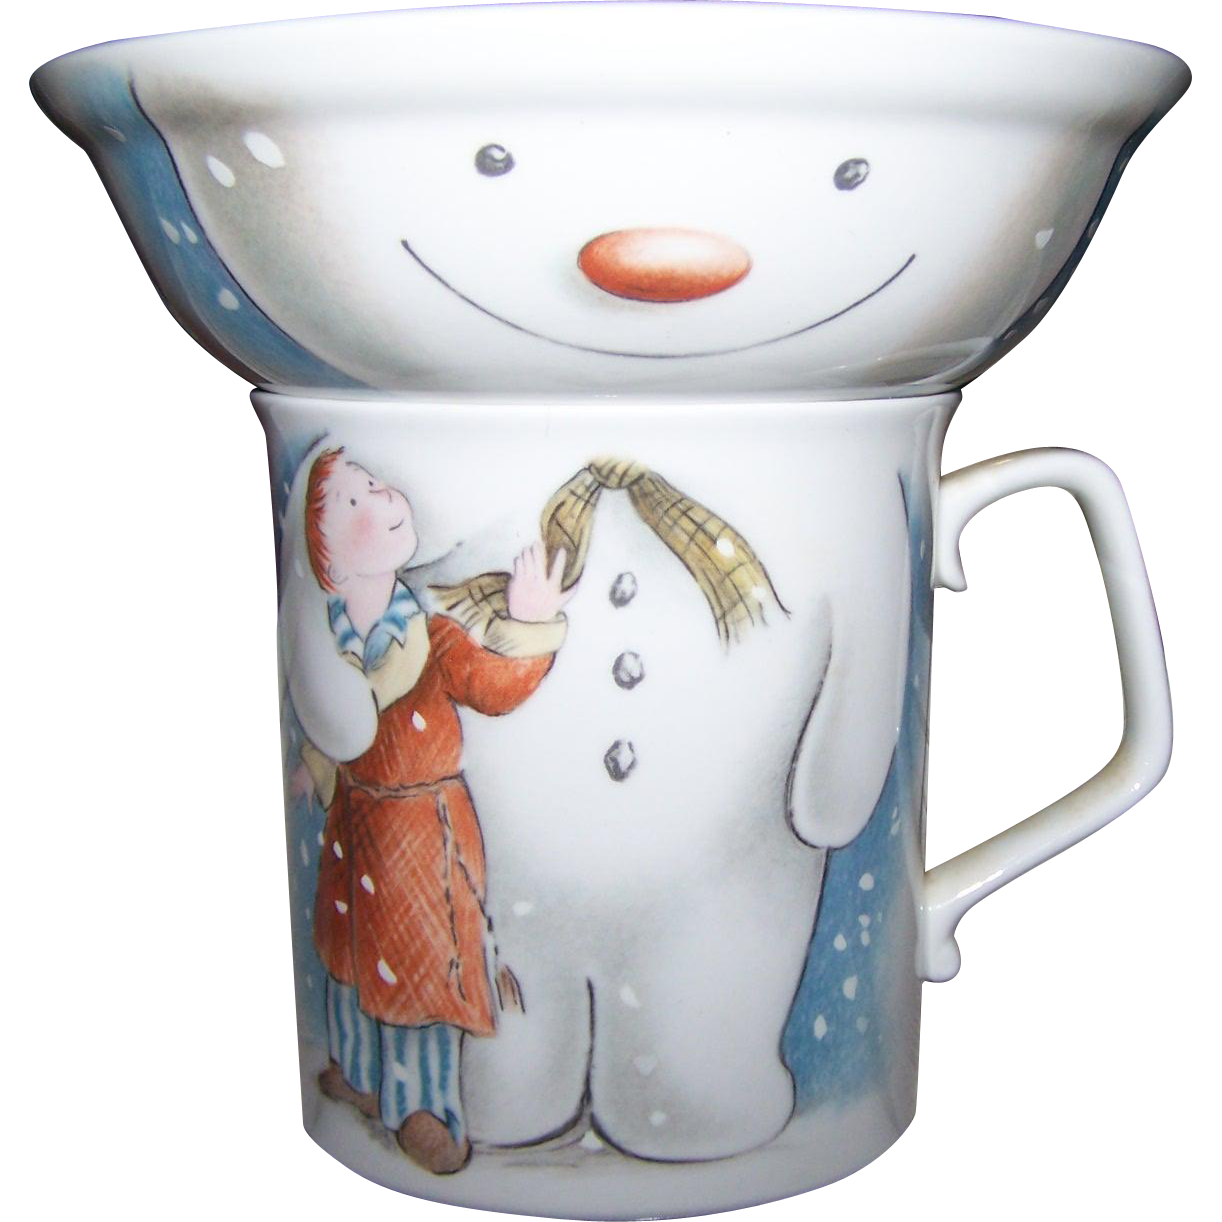 2 Piece Replacement Set Royal Doulton The Snowman Gift Collection Mug & Bowl Made in England